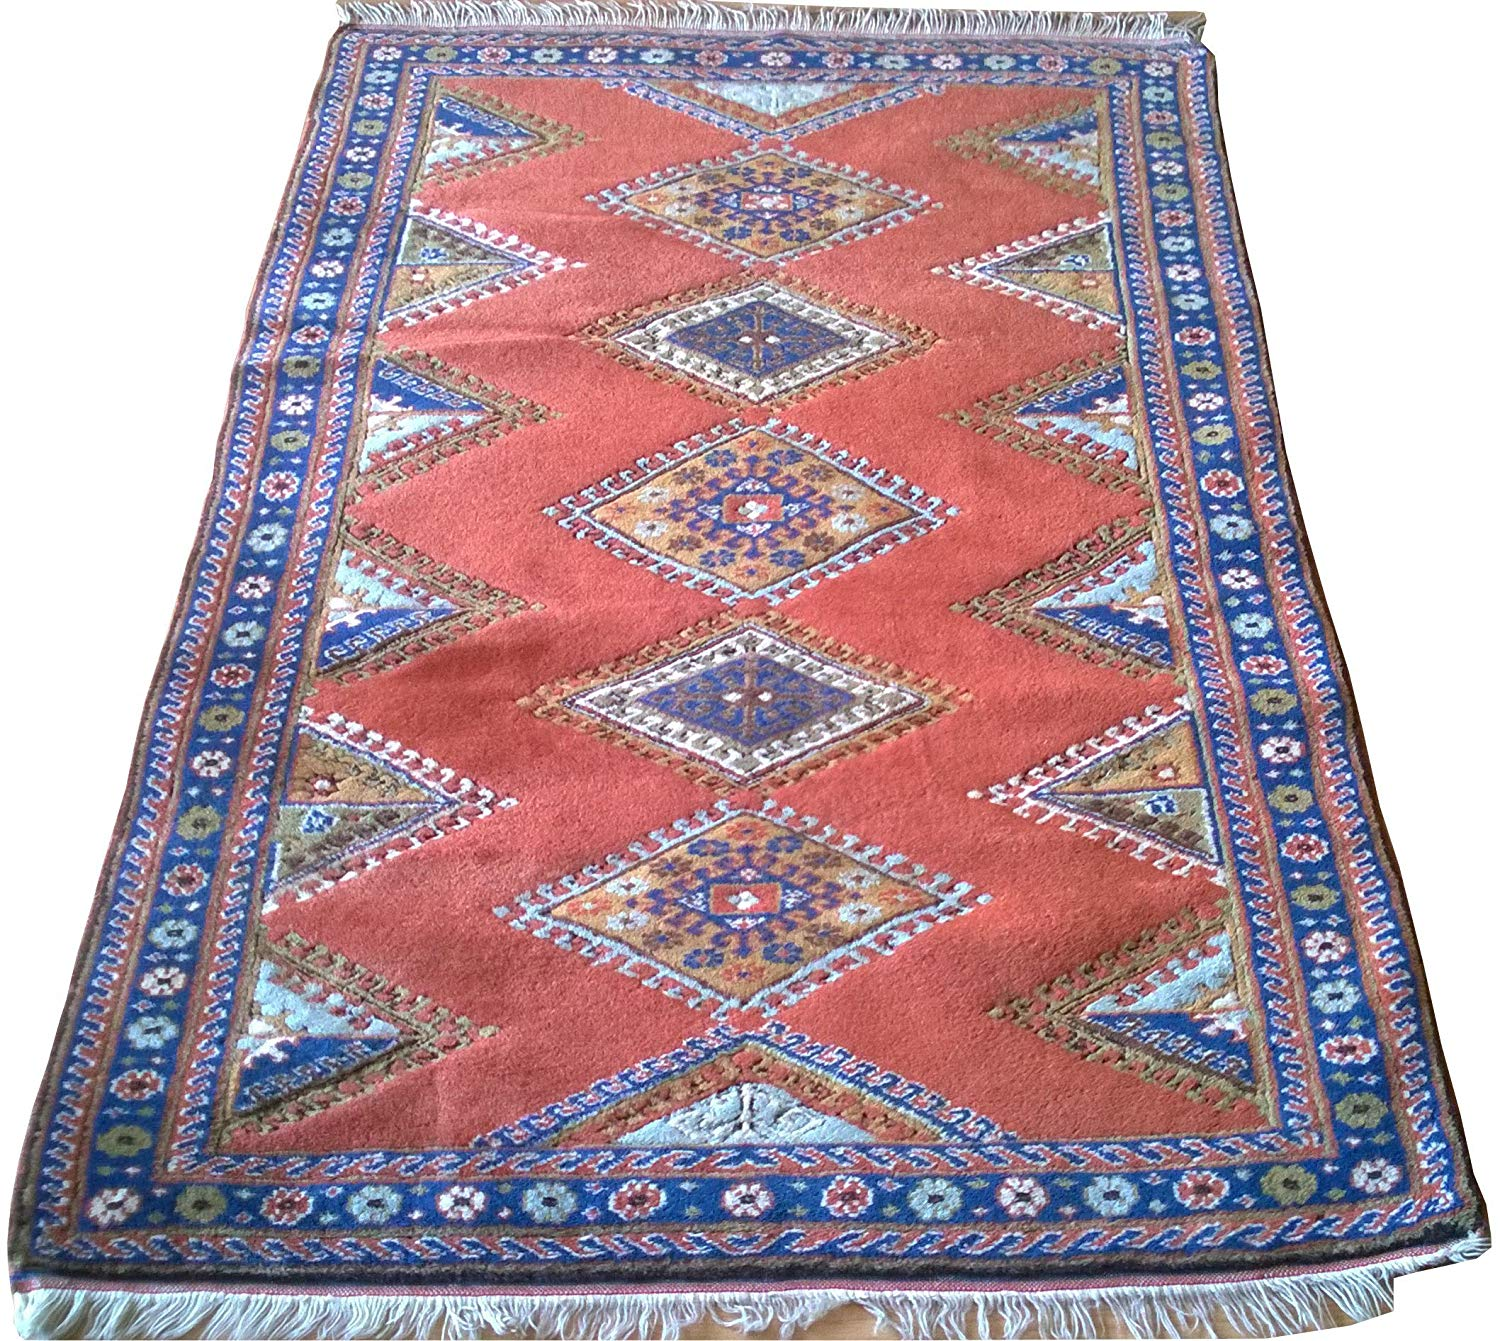 Cheap 3 X 5 Wool Rug Find 3 X 5 Wool Rug Deals On Line At Alibaba Com